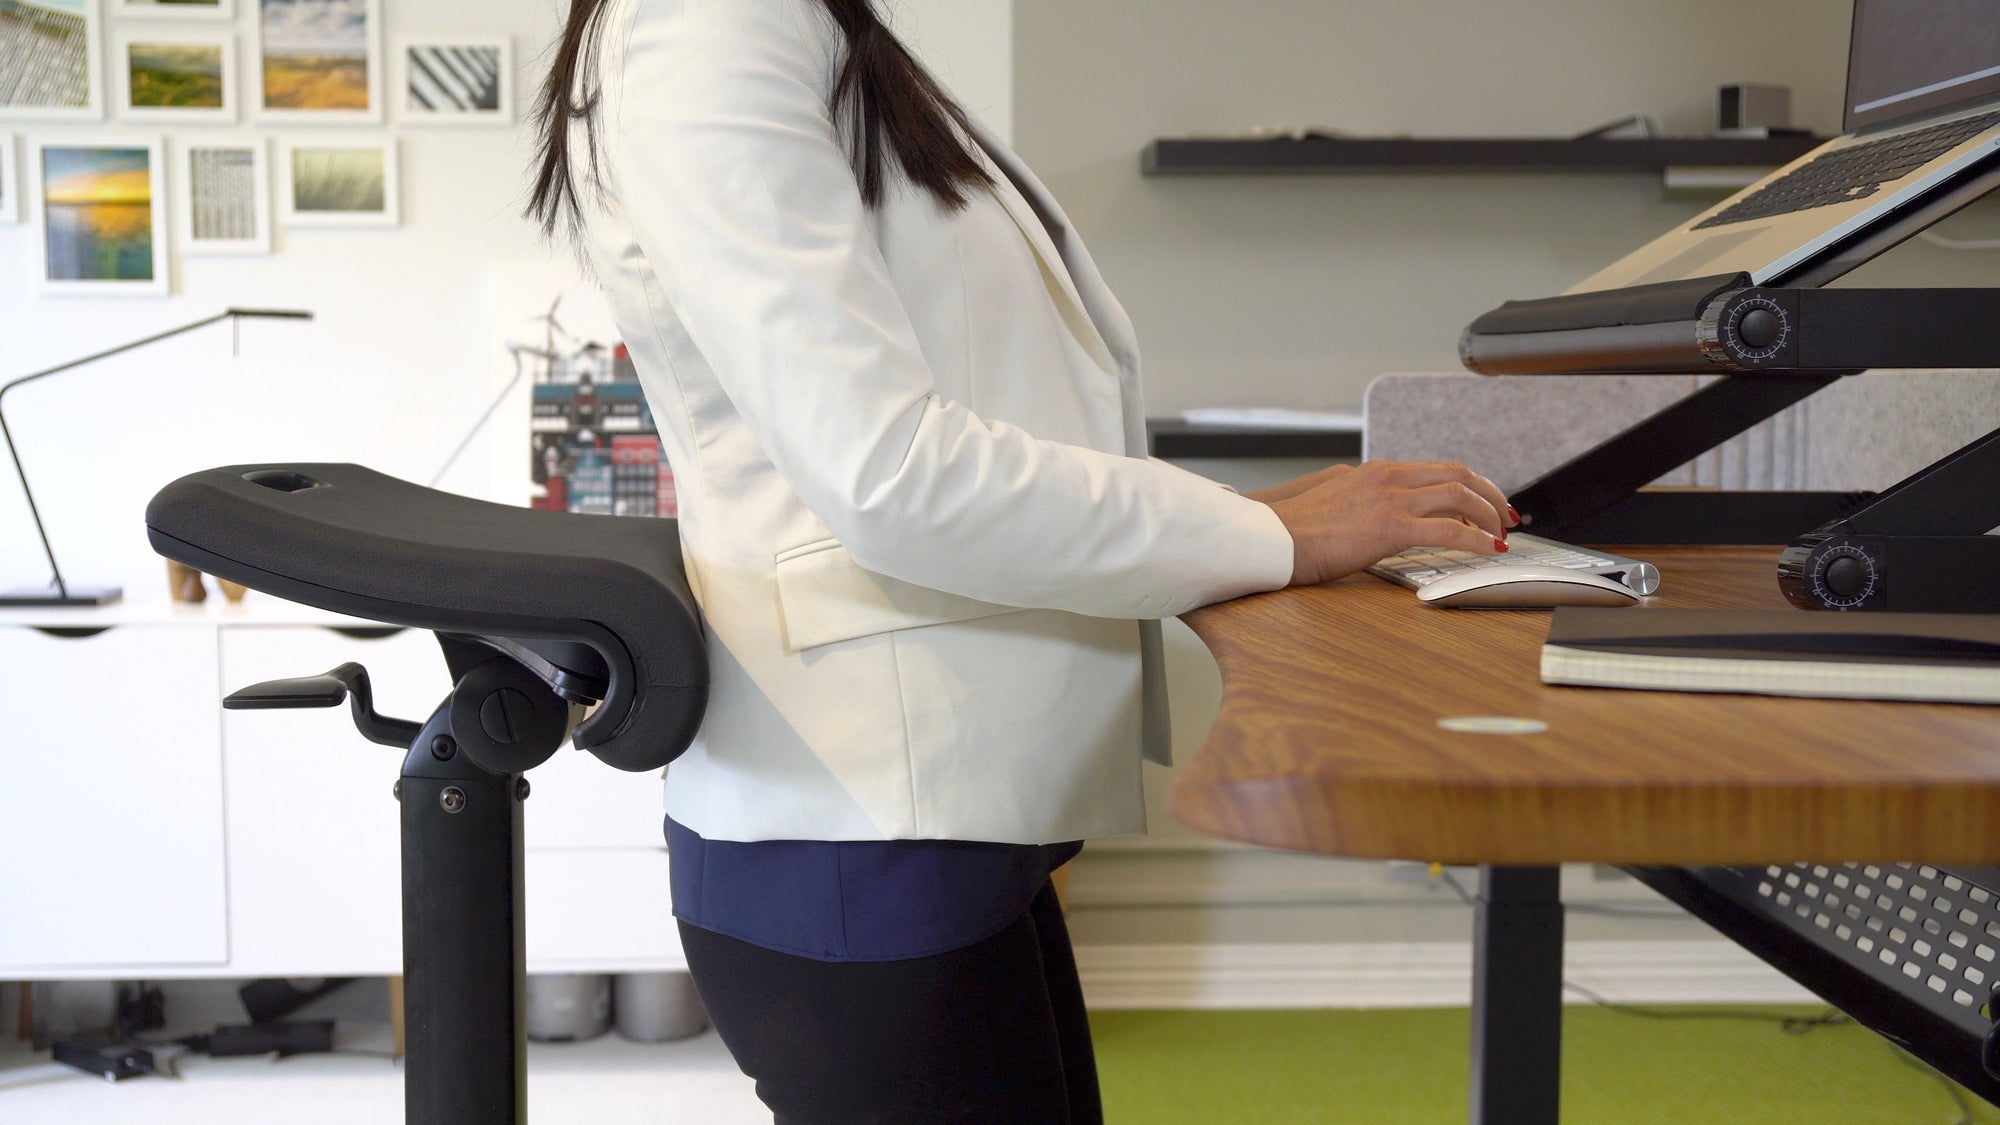 Can You Purchase an Ergonomic Office Chair with an FSA/HSA Account?